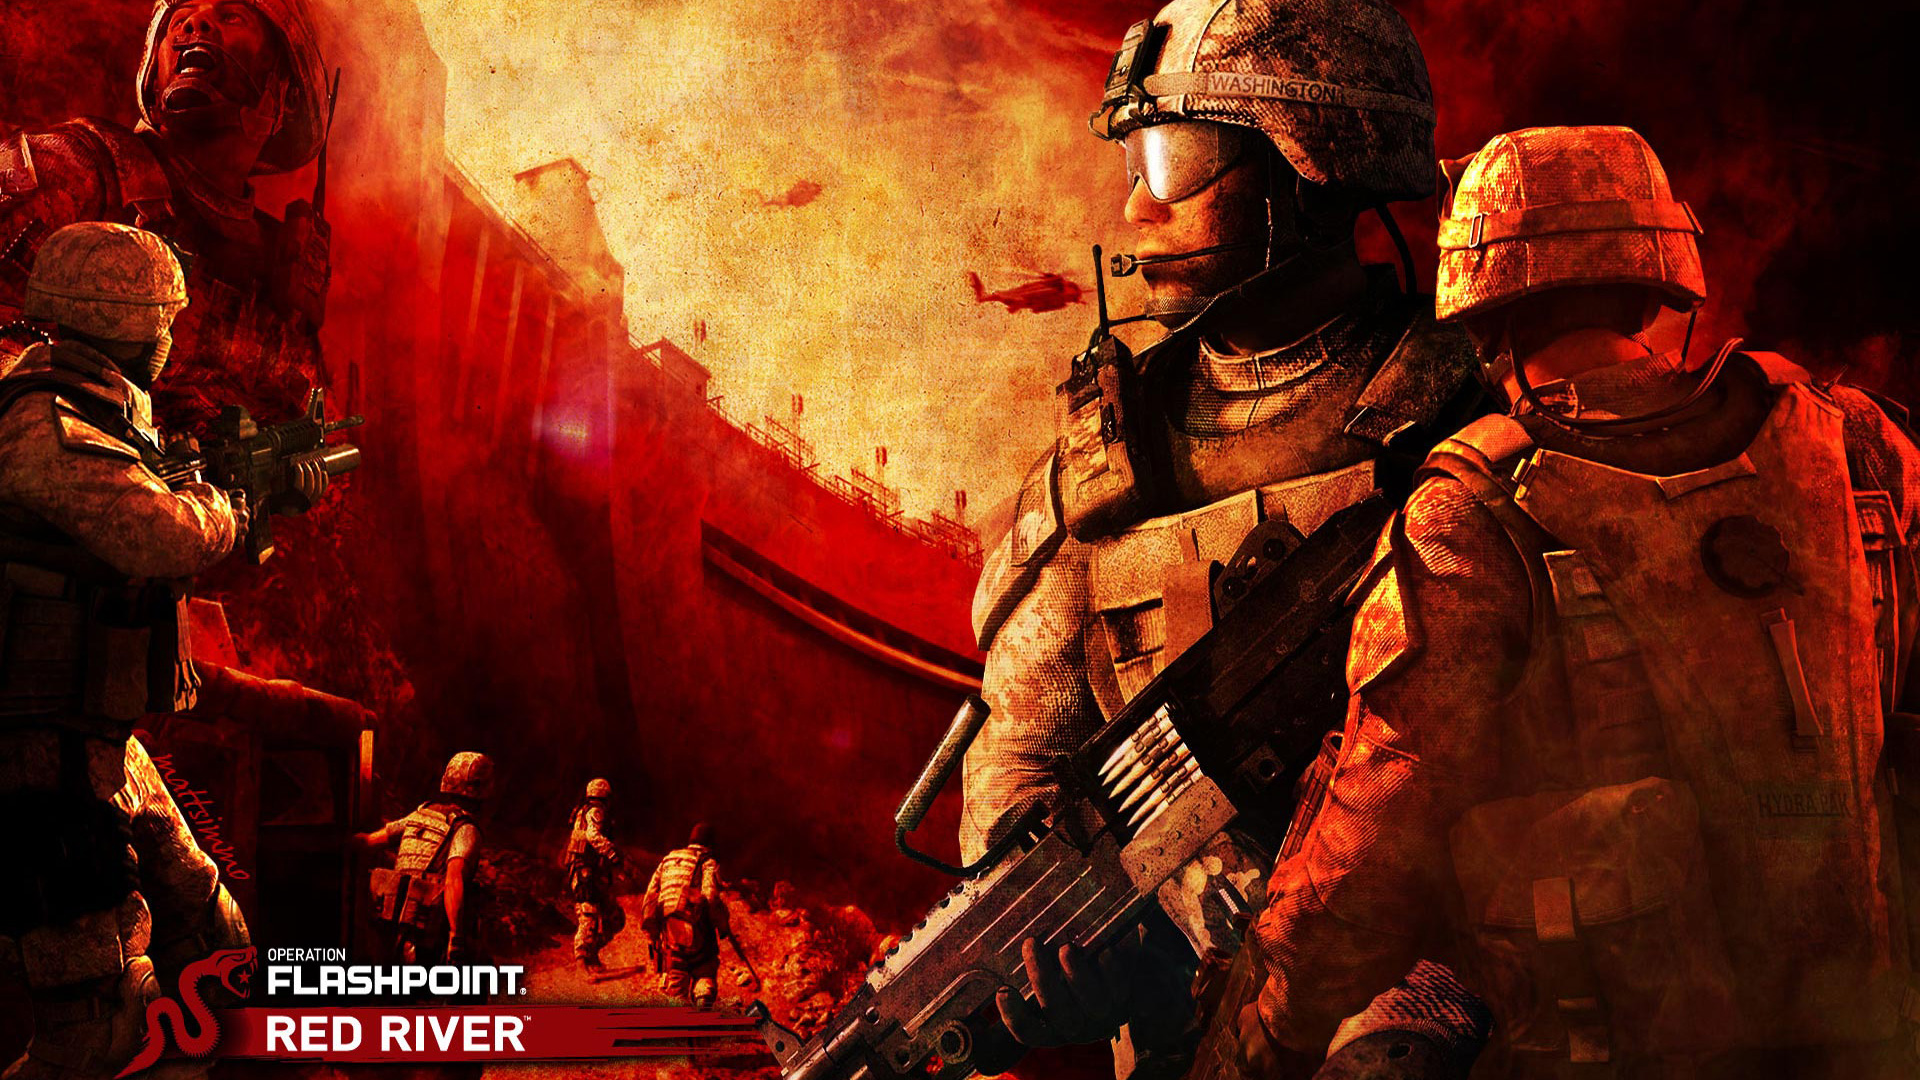 Operation Flashpoint: Red River Wallpaper in 1920x1080